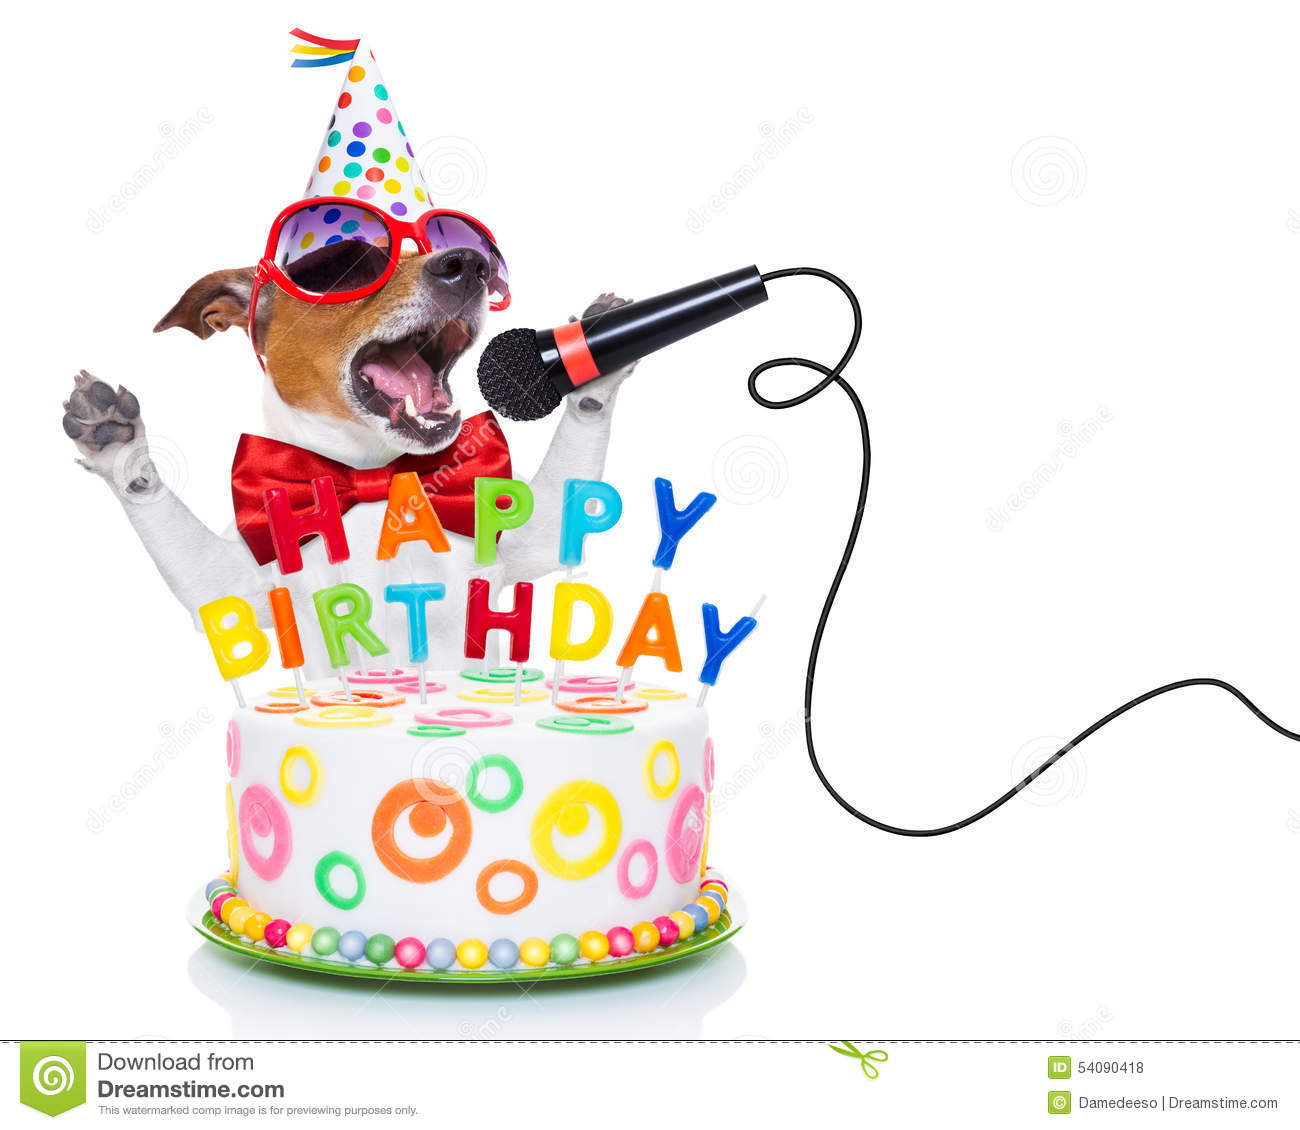 happy birthday clip art with dogs ; happy-birthday-dog-jack-russell-as-surprise-singing-song-like-karaoke-microphone-behind-funny-cake-wearing-red-tie-54090418